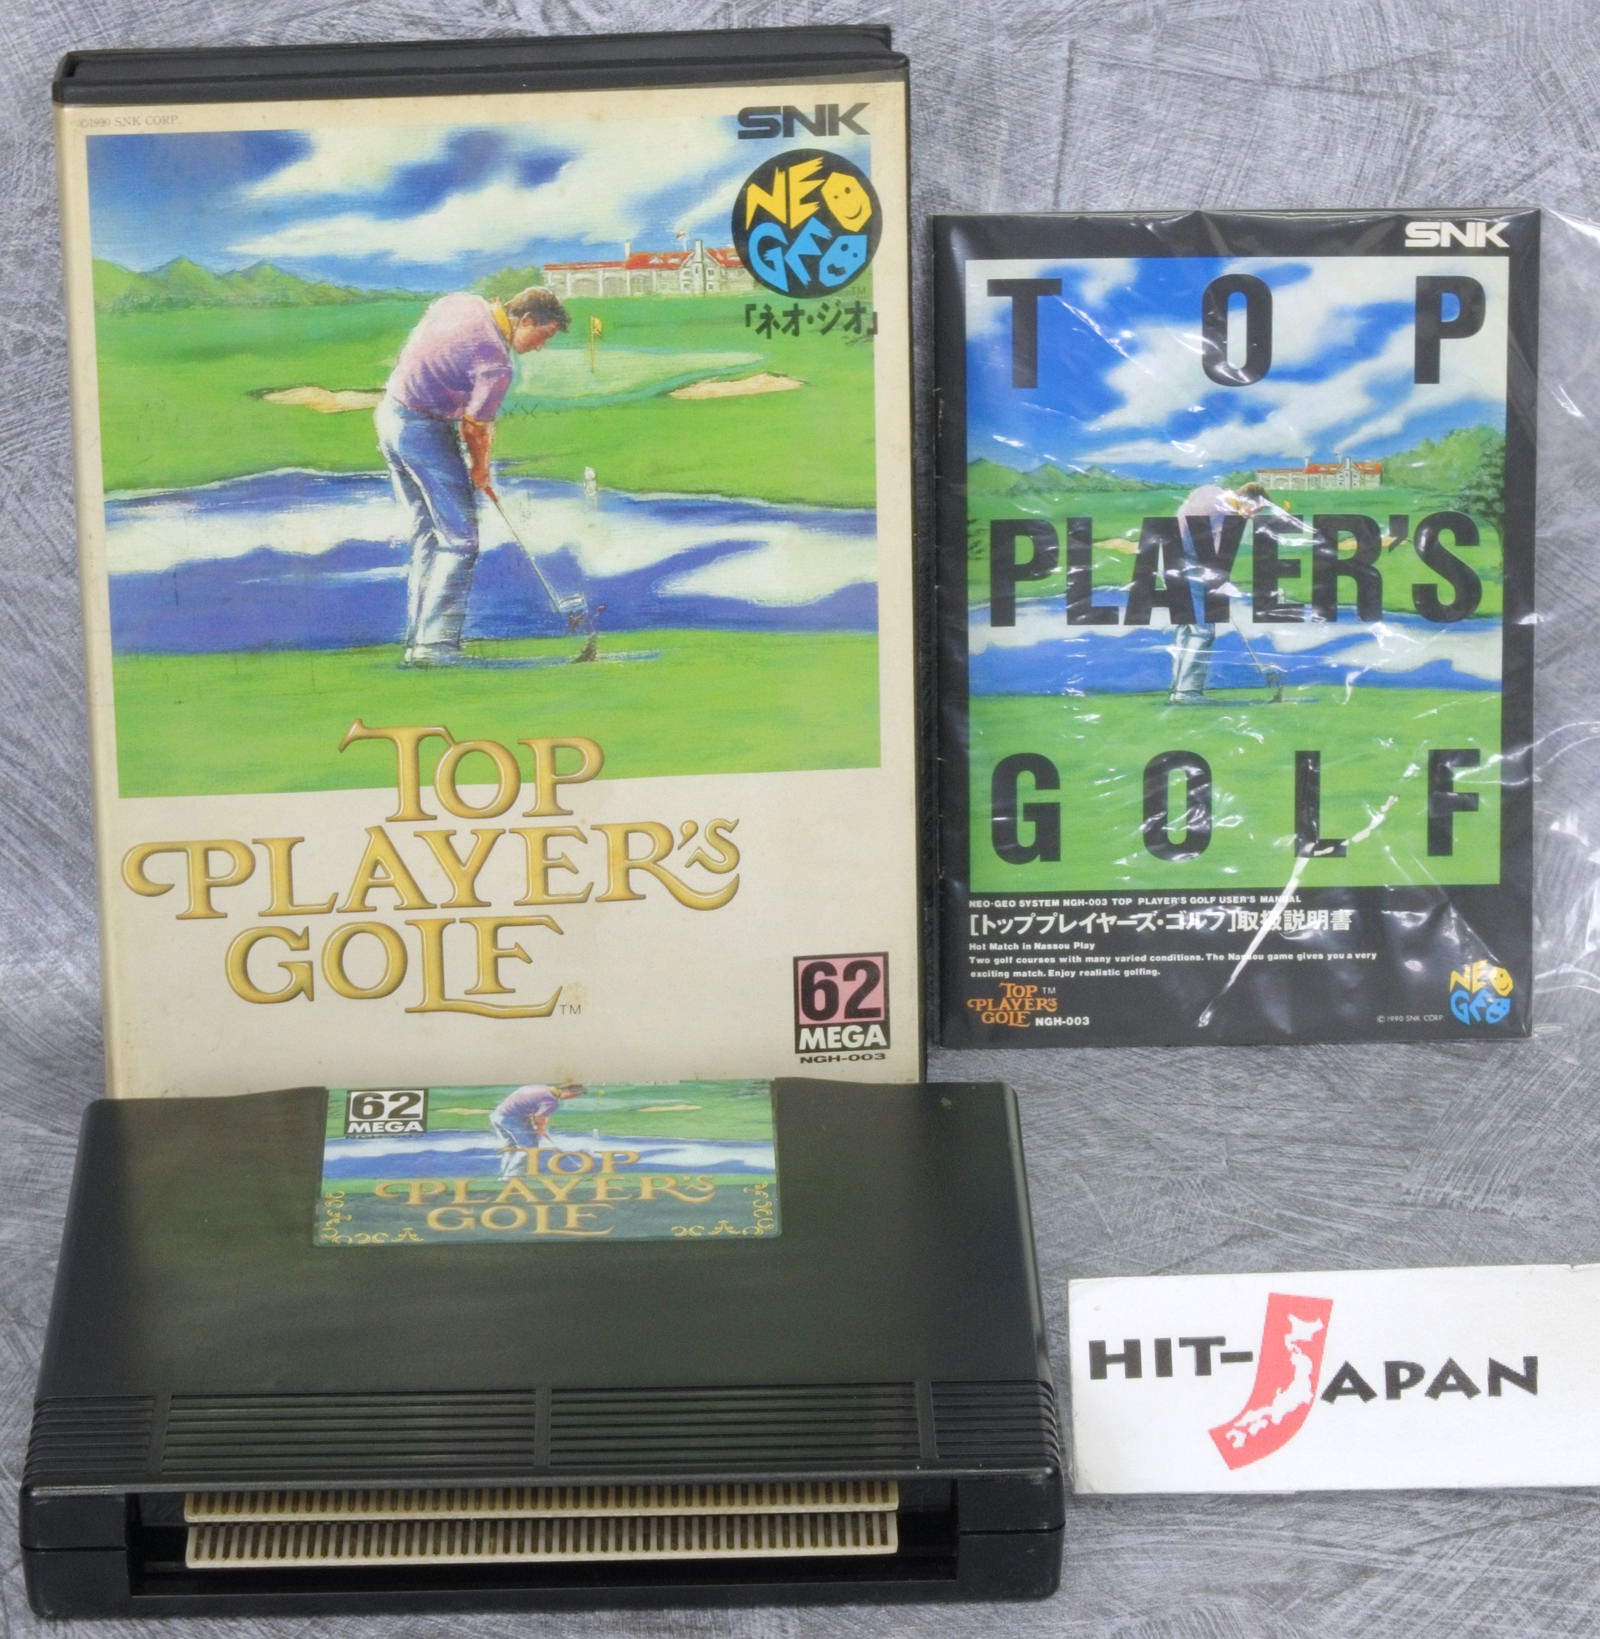 Details about TOP PLAYER'S GOLF NEO GEO AES FREE SHIPPING Ref/0701 SNK  neogeo JAPAN Game